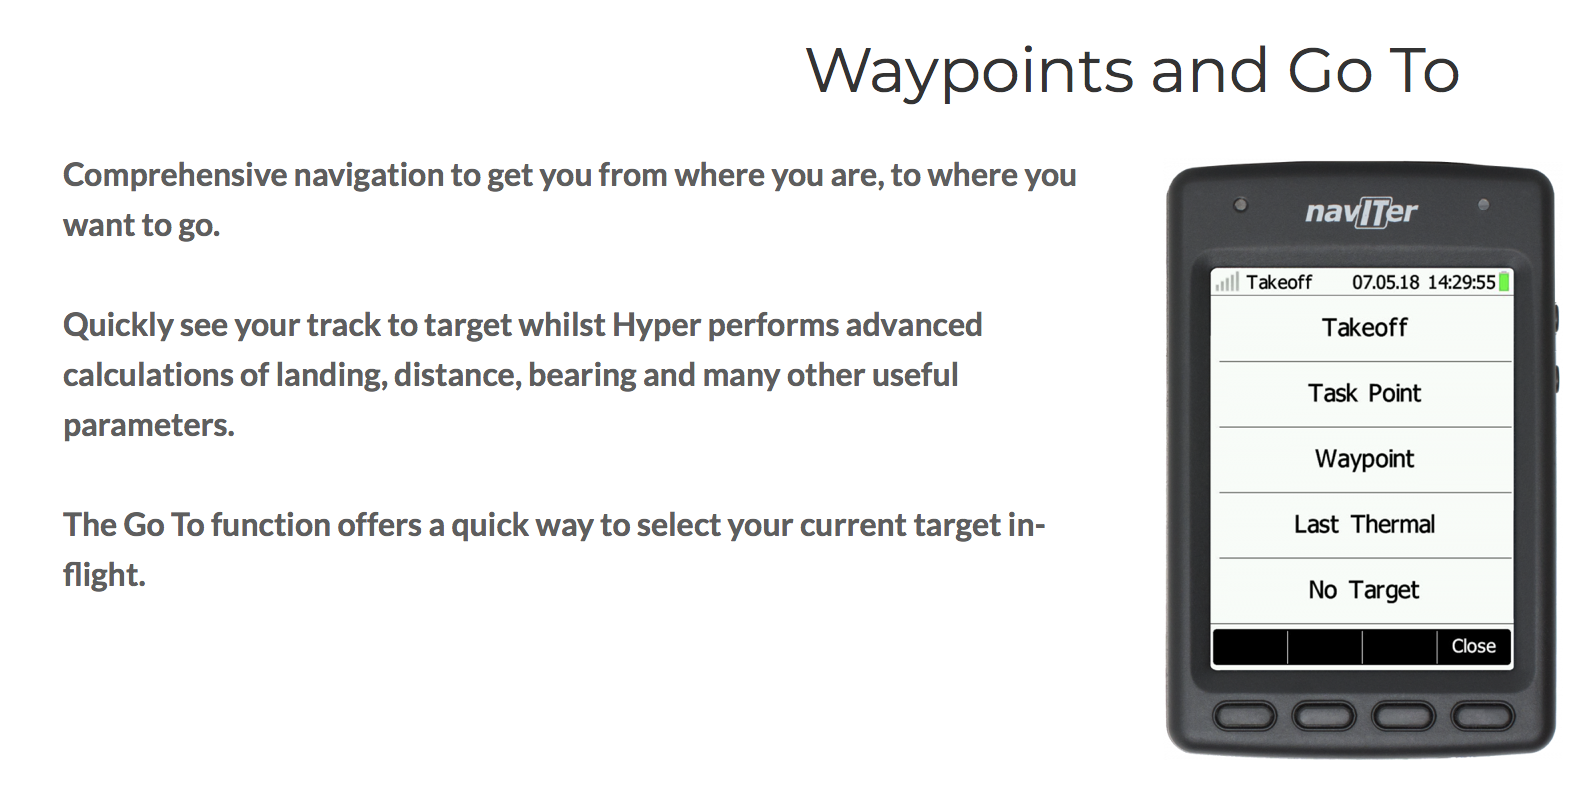 Naviter Hyper - Waypoints and Go To